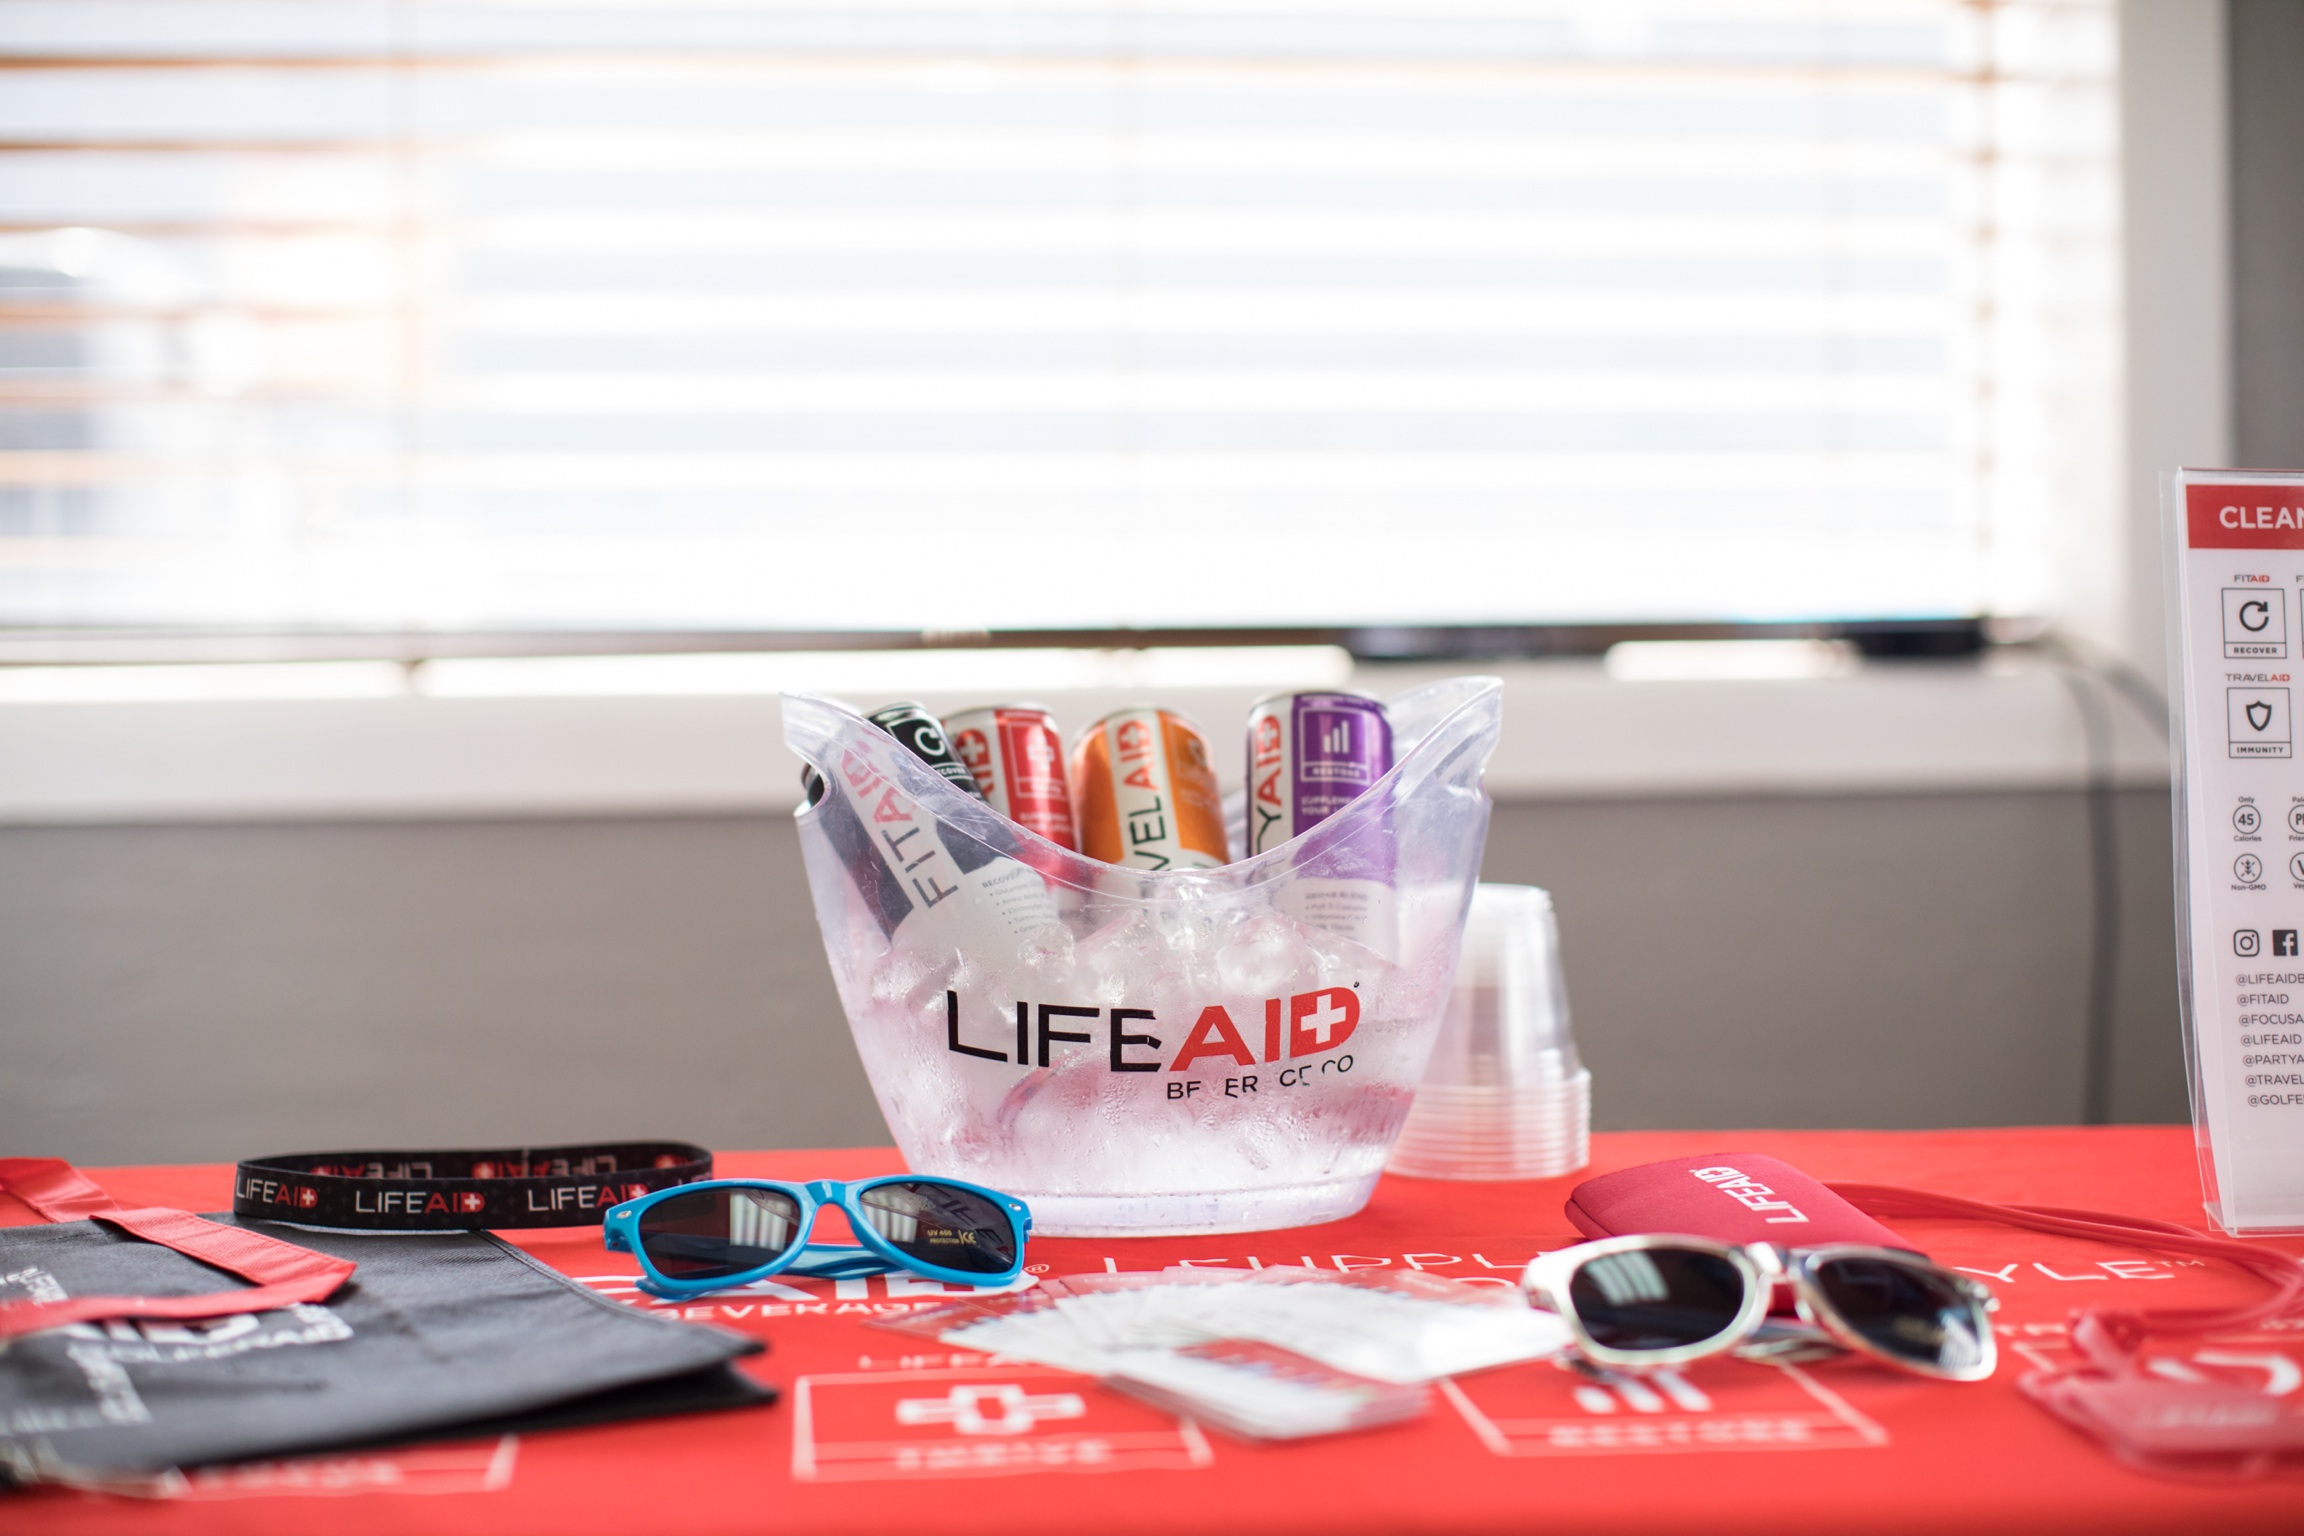 LIFEAid with the recovery drinks!